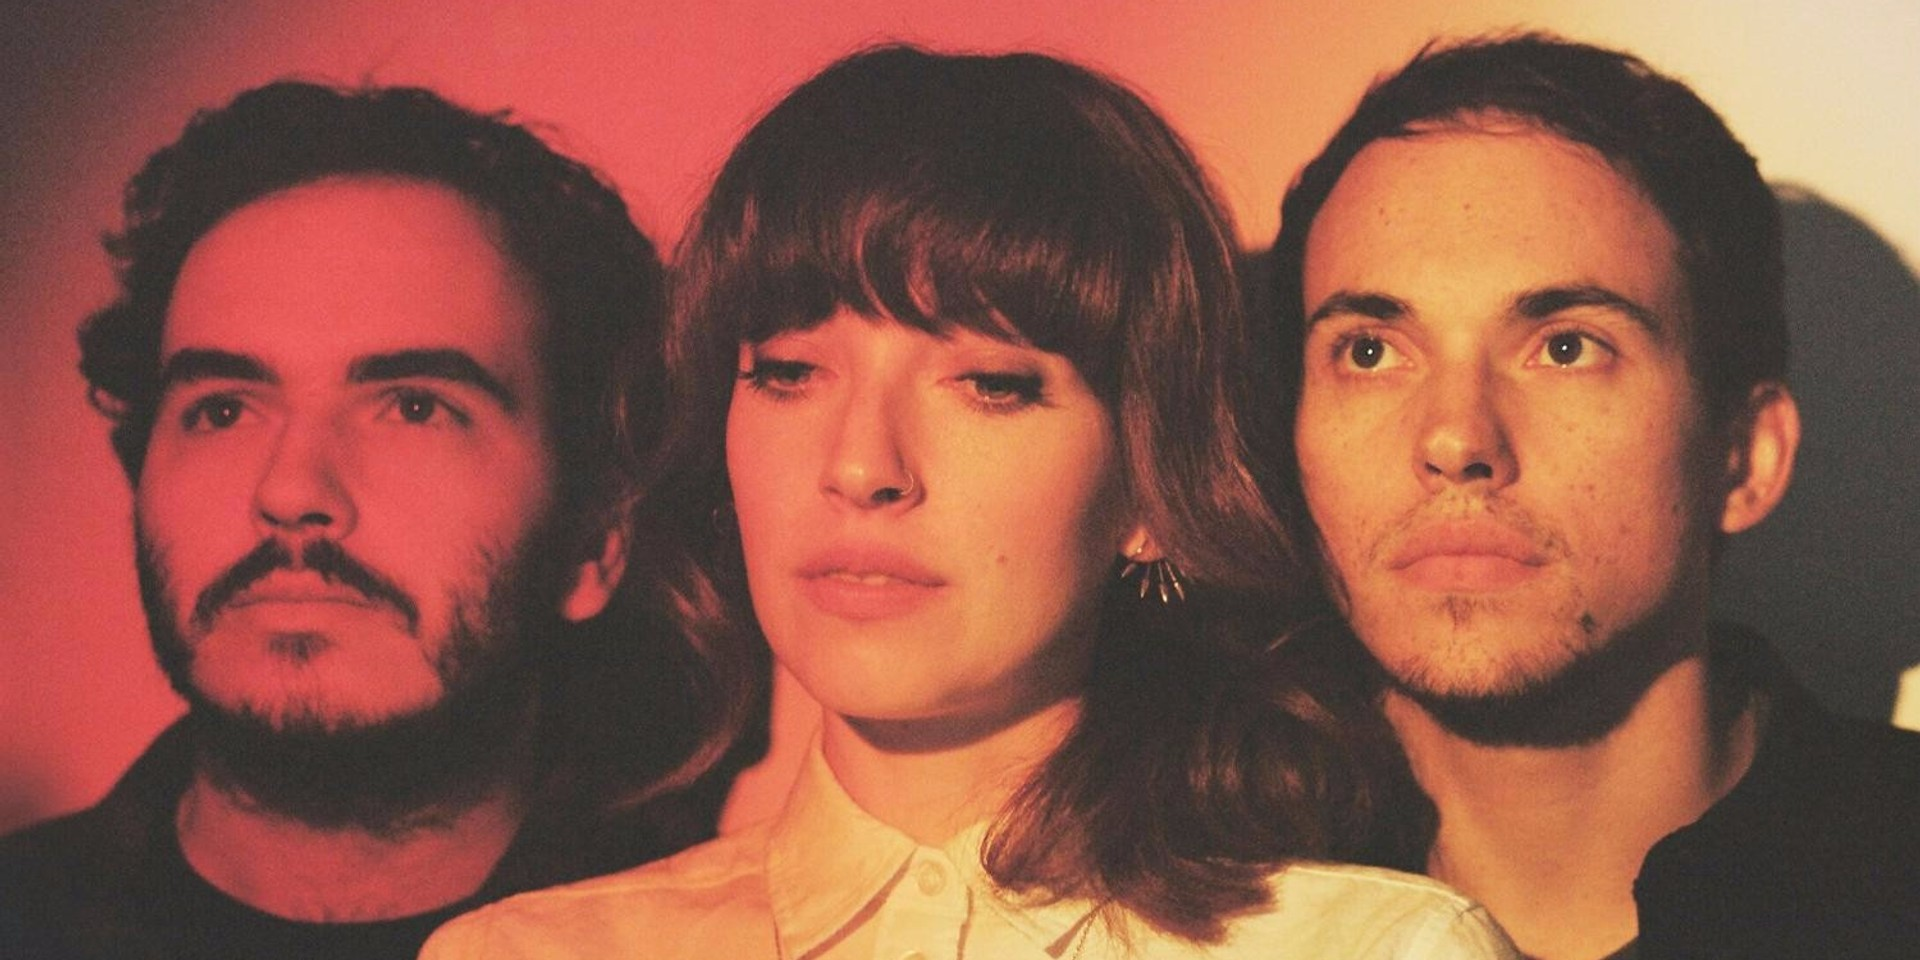 ALBUM REVIEW: Daughter - Not To Disappear